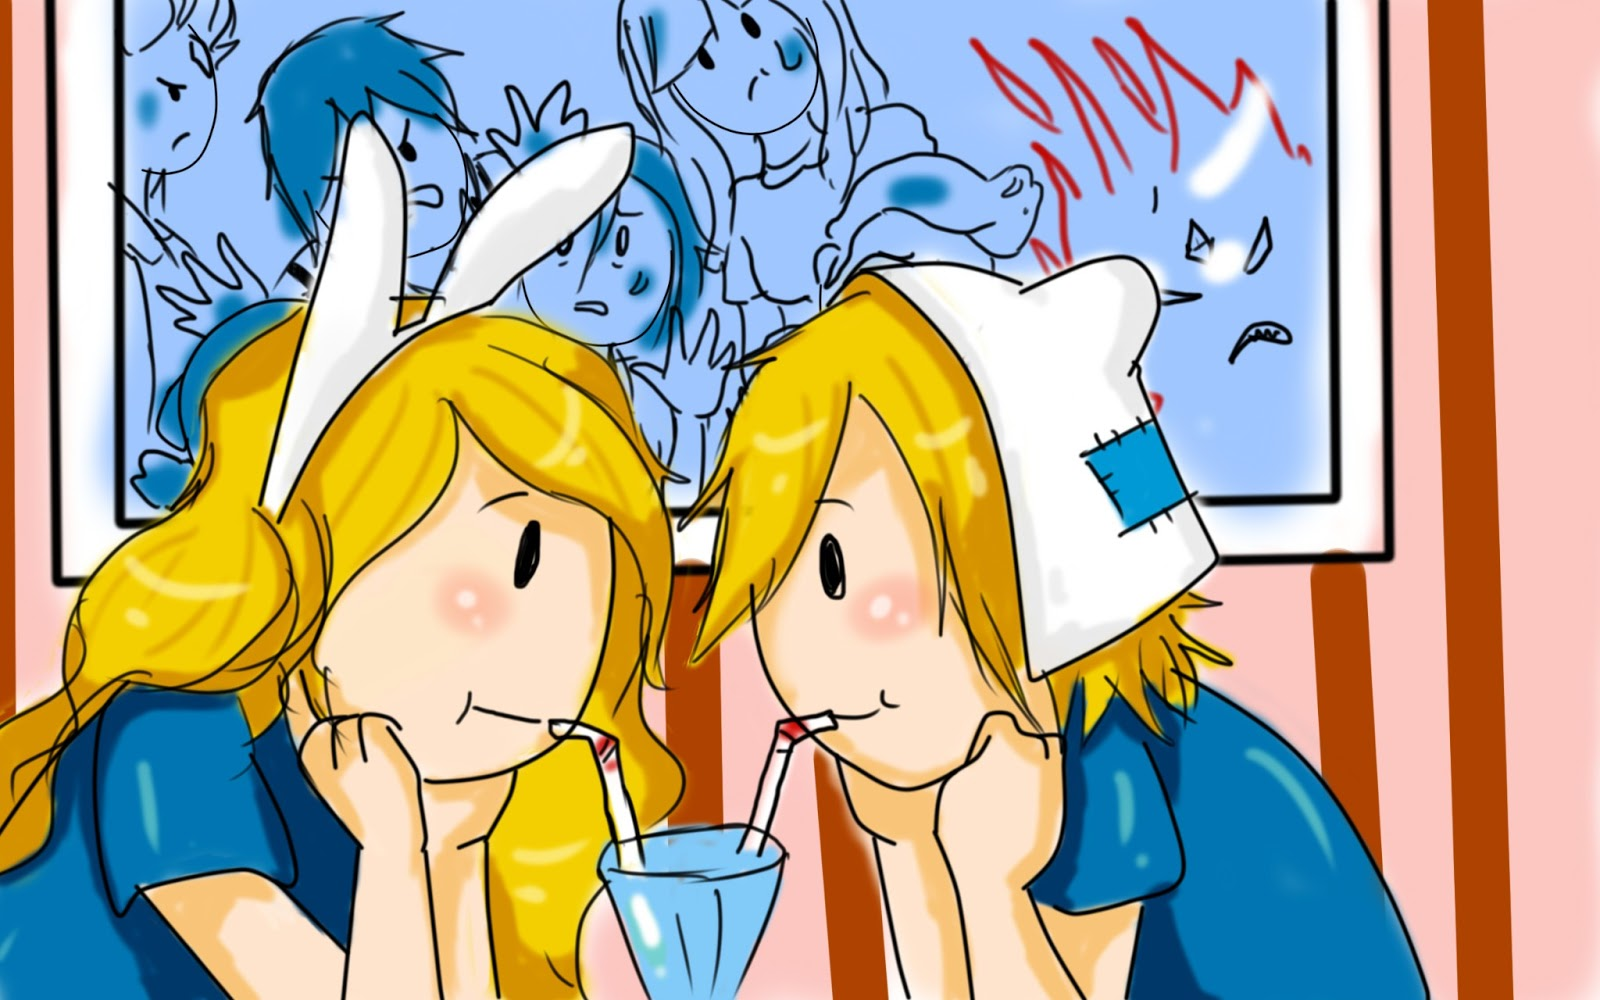 finn x fionna fanfiction - photo #8